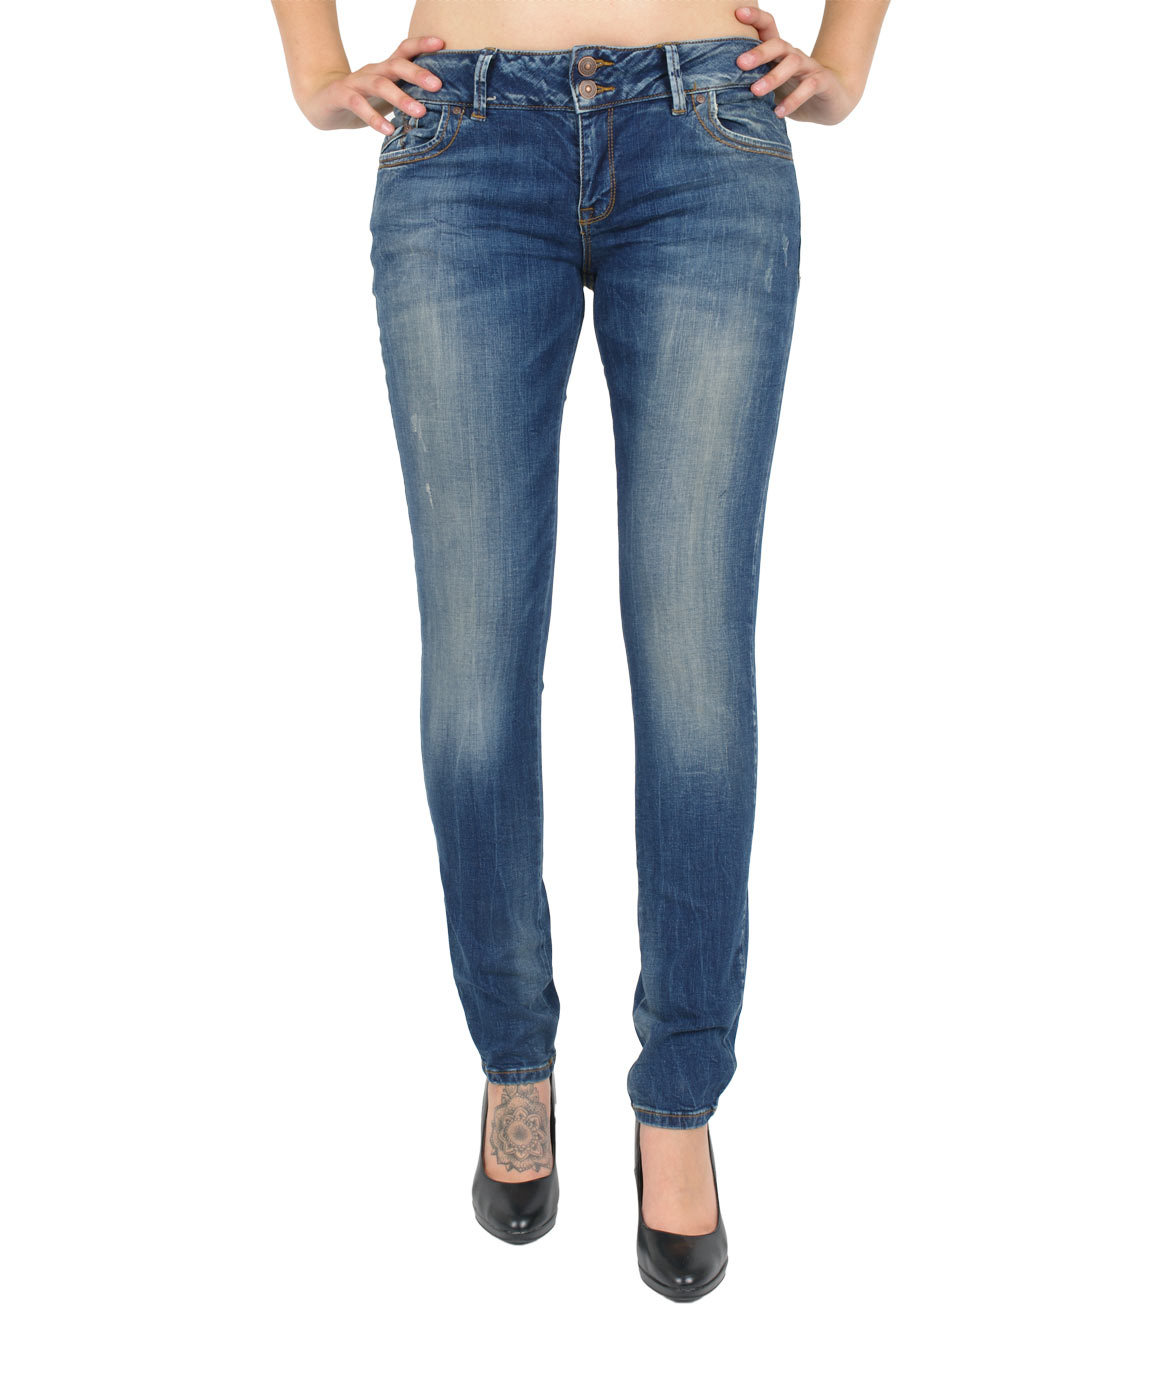 Hosen - LTB Slim Fit Jeans Molly in Erwina  - Onlineshop Jeans Meile